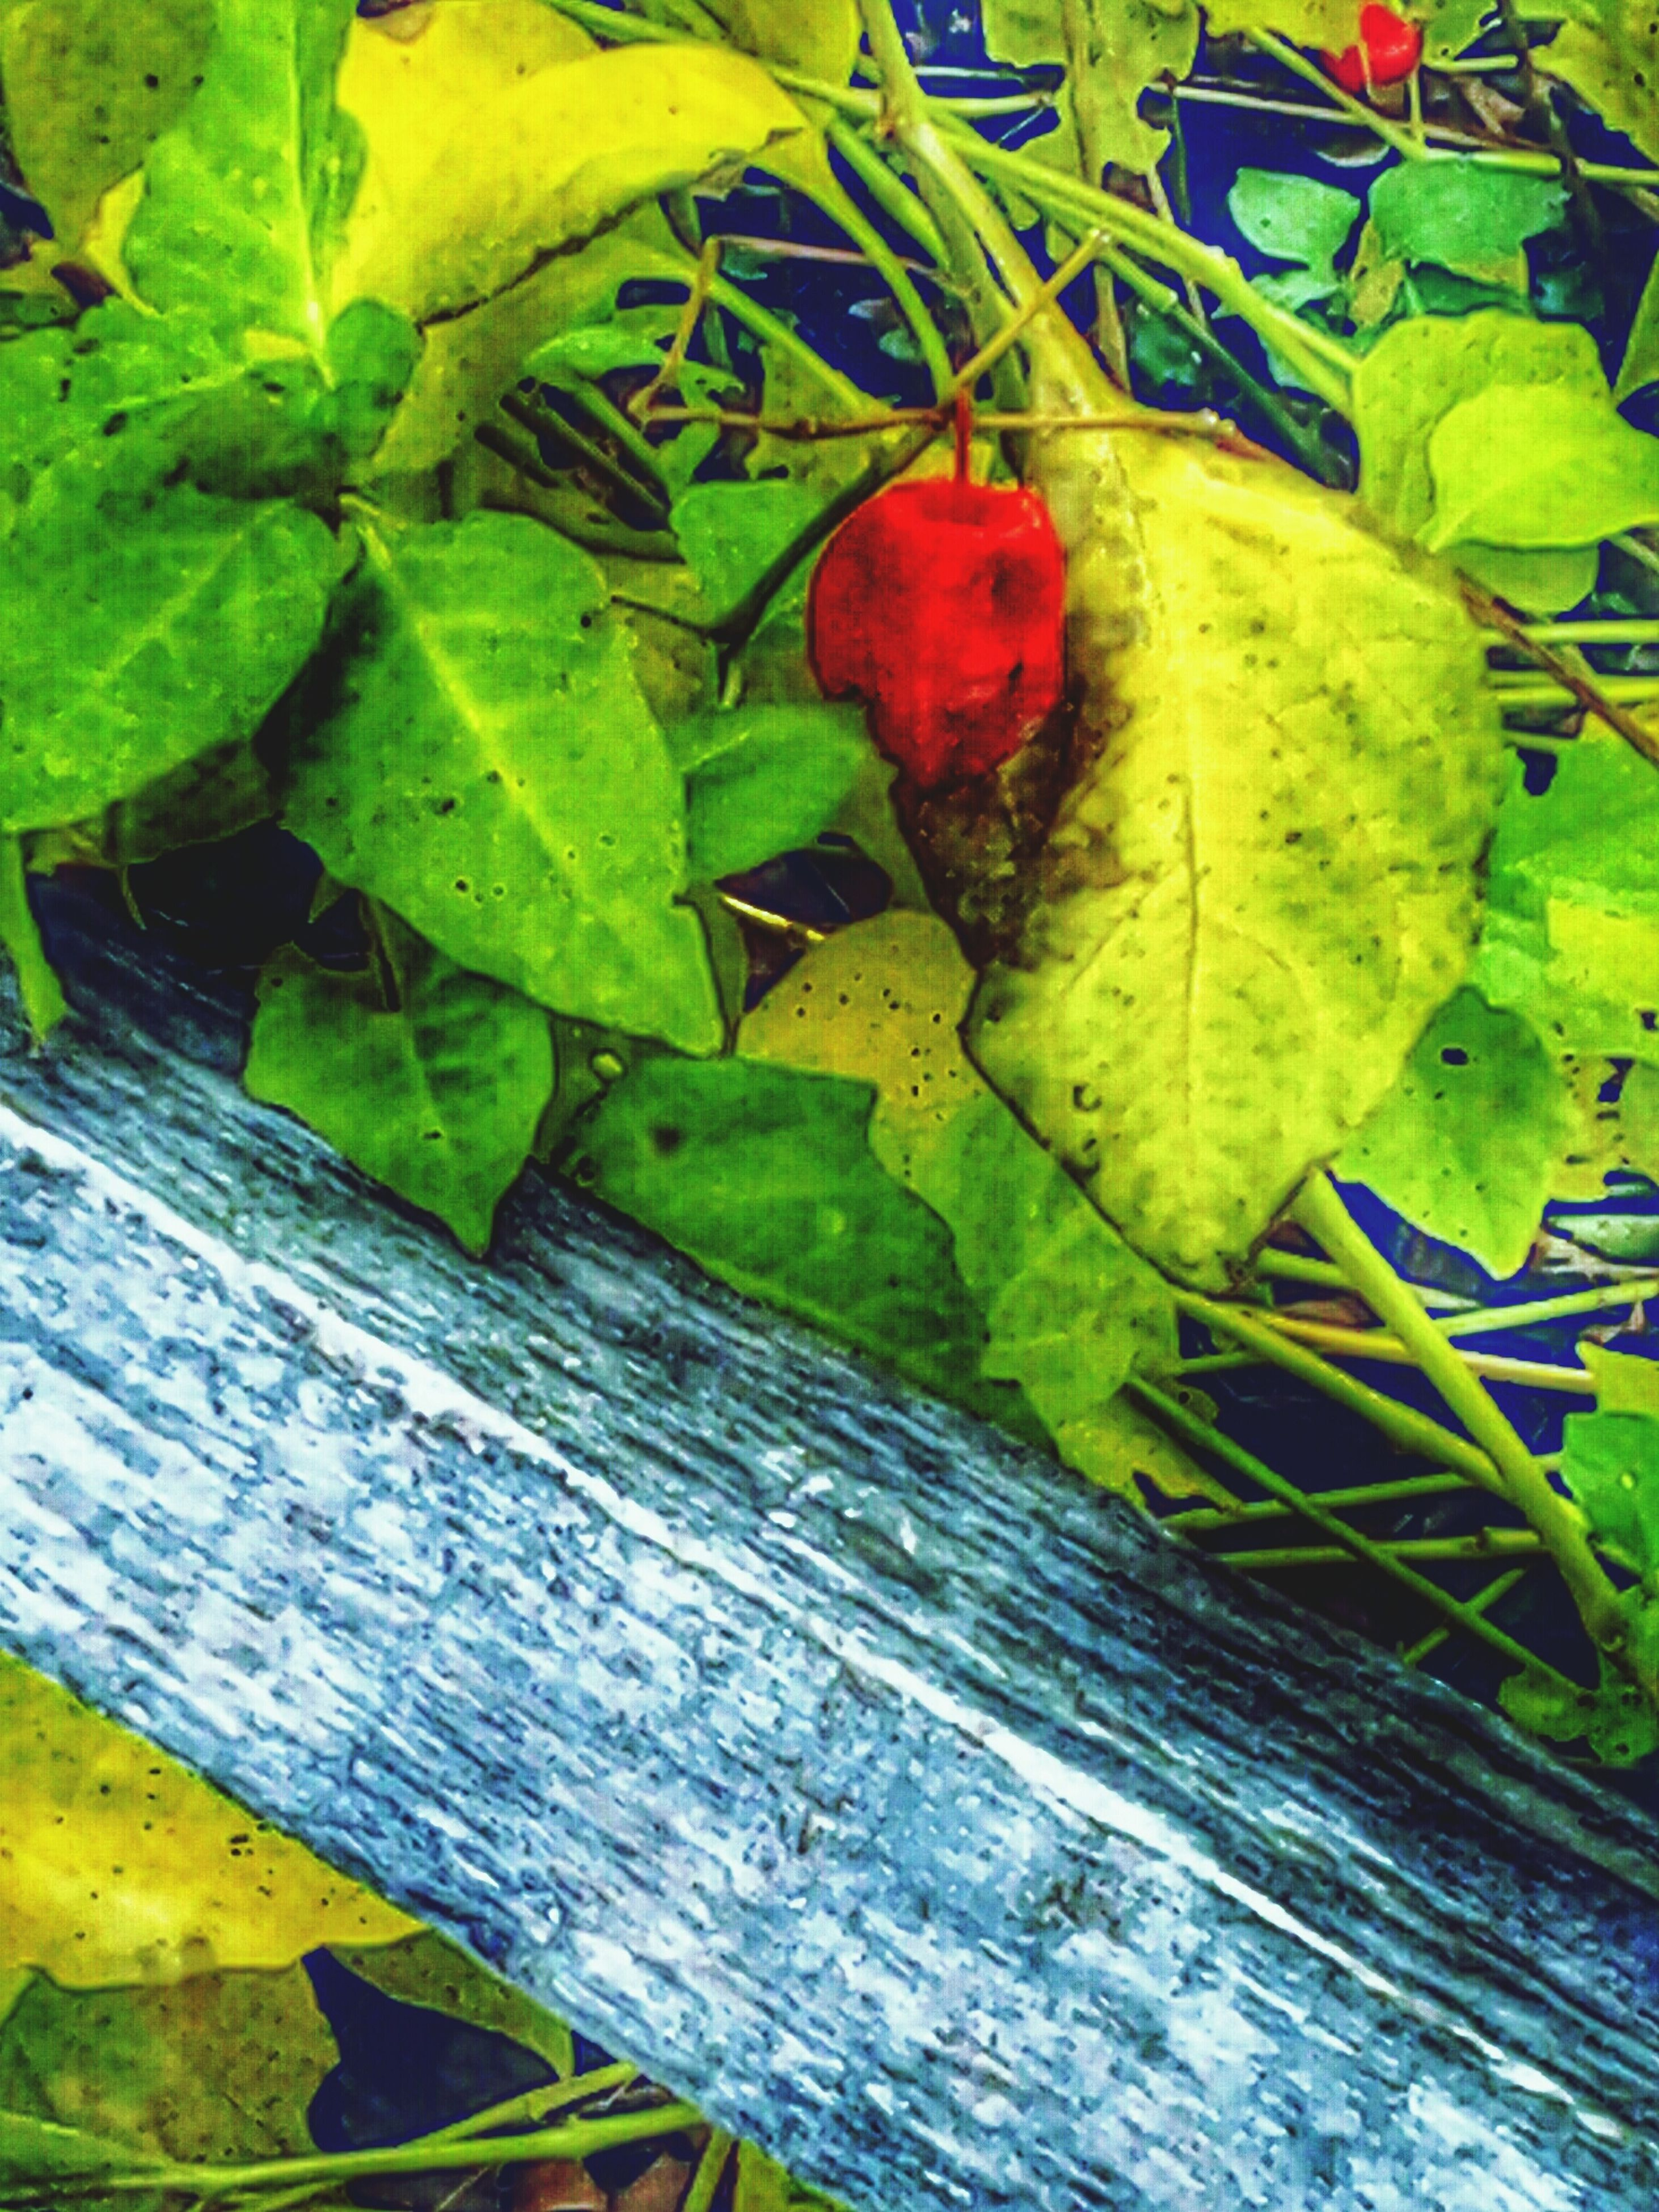 leaf, wood - material, green color, high angle view, wooden, close-up, plank, autumn, wood, leaves, no people, day, nature, outdoors, yellow, growth, green, change, multi colored, directly above